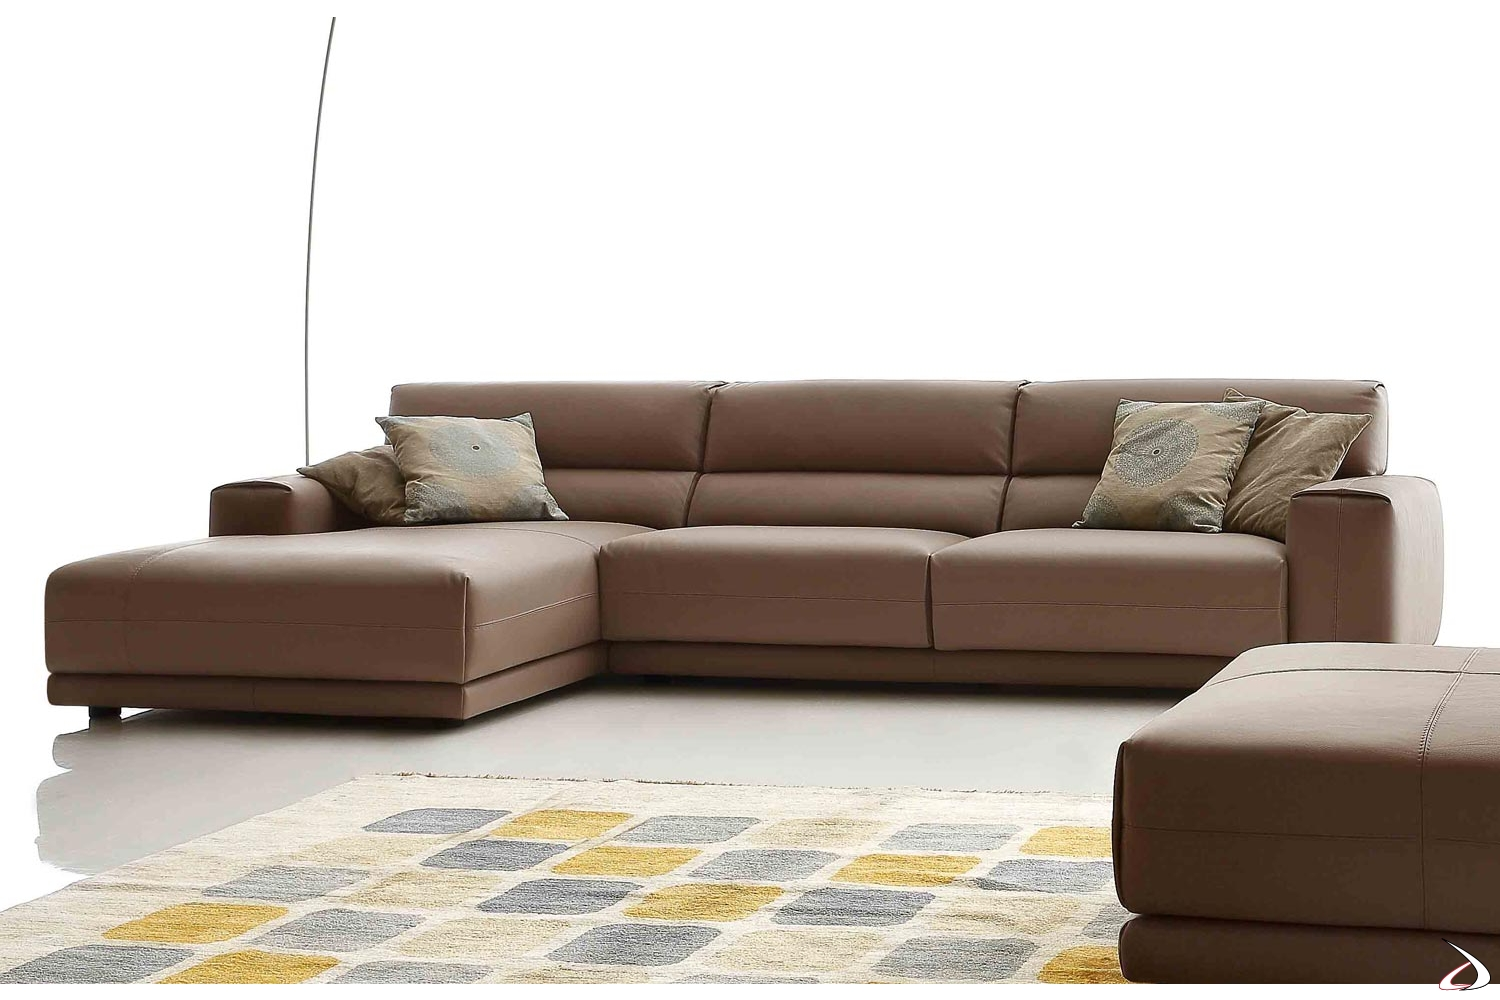 Full Size of Modulares Sofa Im Namob Design Toparredi Arredo Online Hay Mags Schilling Riess Ambiente Mit Relaxfunktion 3 Sitzer L Form Heimkino Abnehmbaren Bezug Angebote Sofa Modulares Sofa